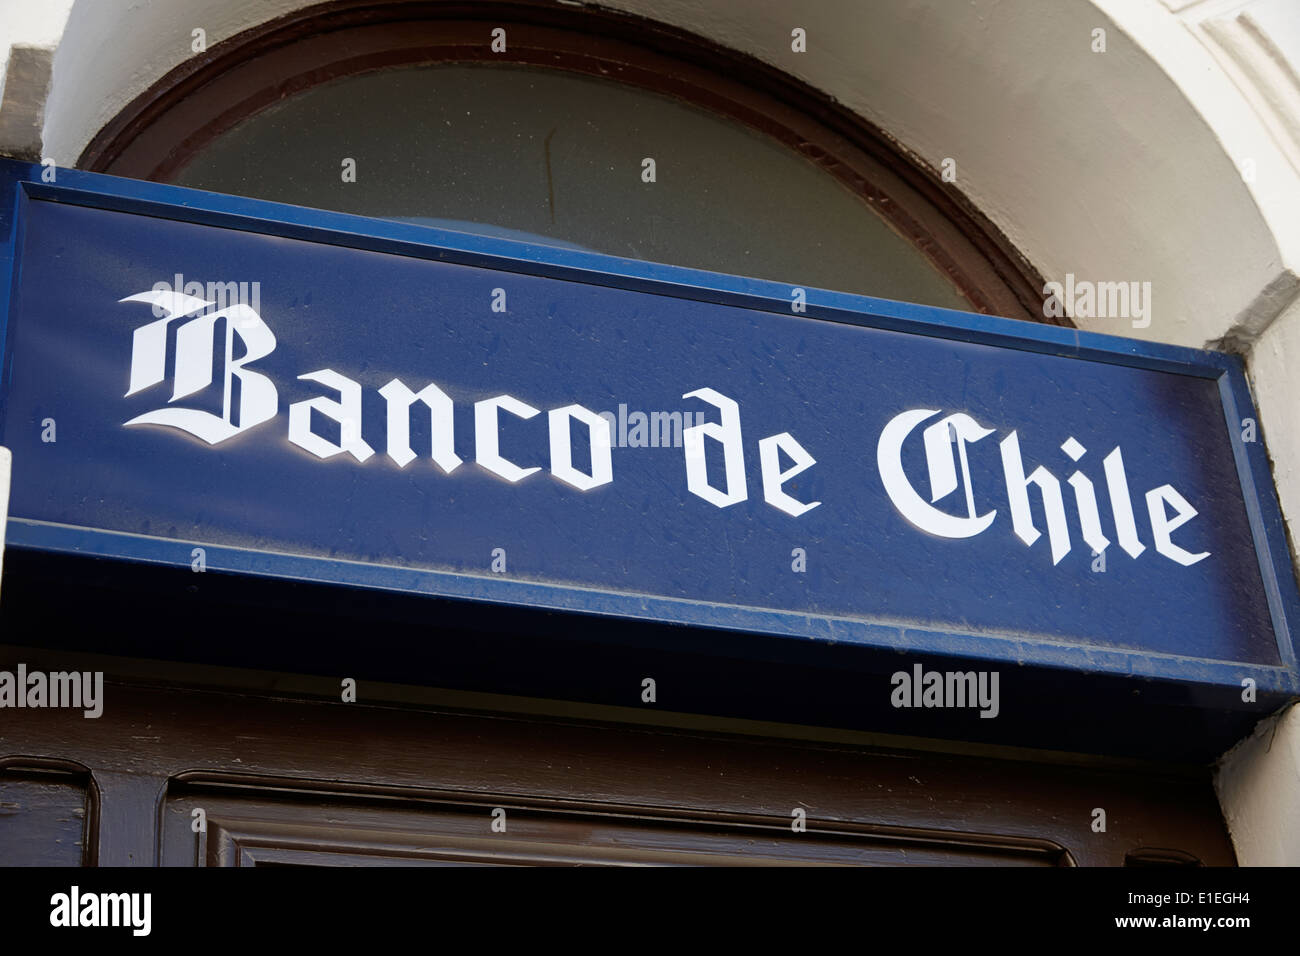 banco de chile logo Punta Arenas Chile Stock Photo